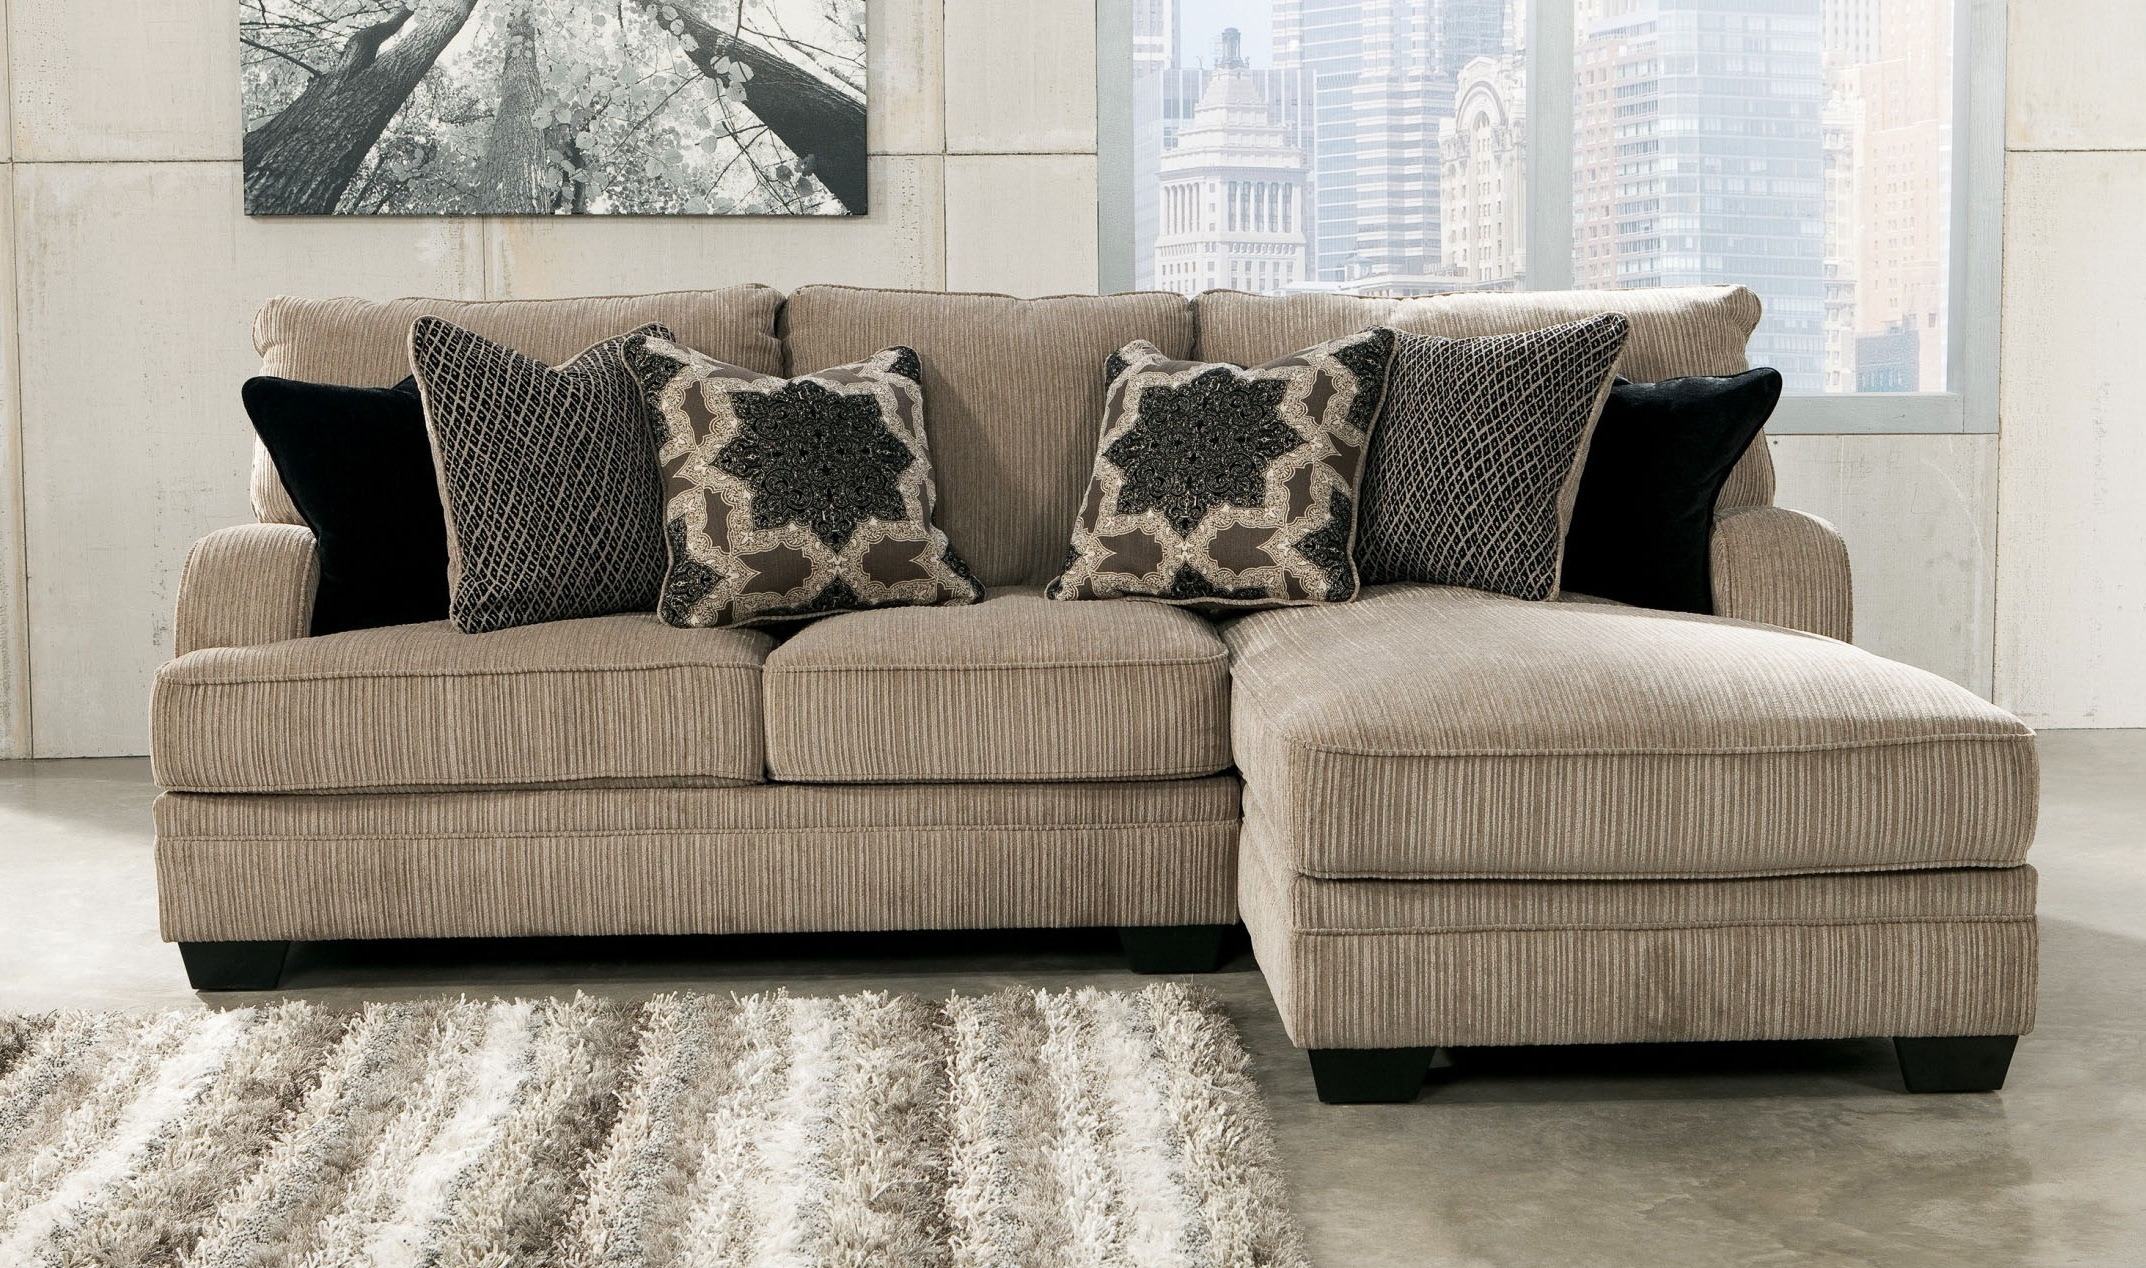 2018 Small Sofas And Chairs For Black Reclining Sectionals Small Sectional Sofa With Recliner (View 5 of 15)